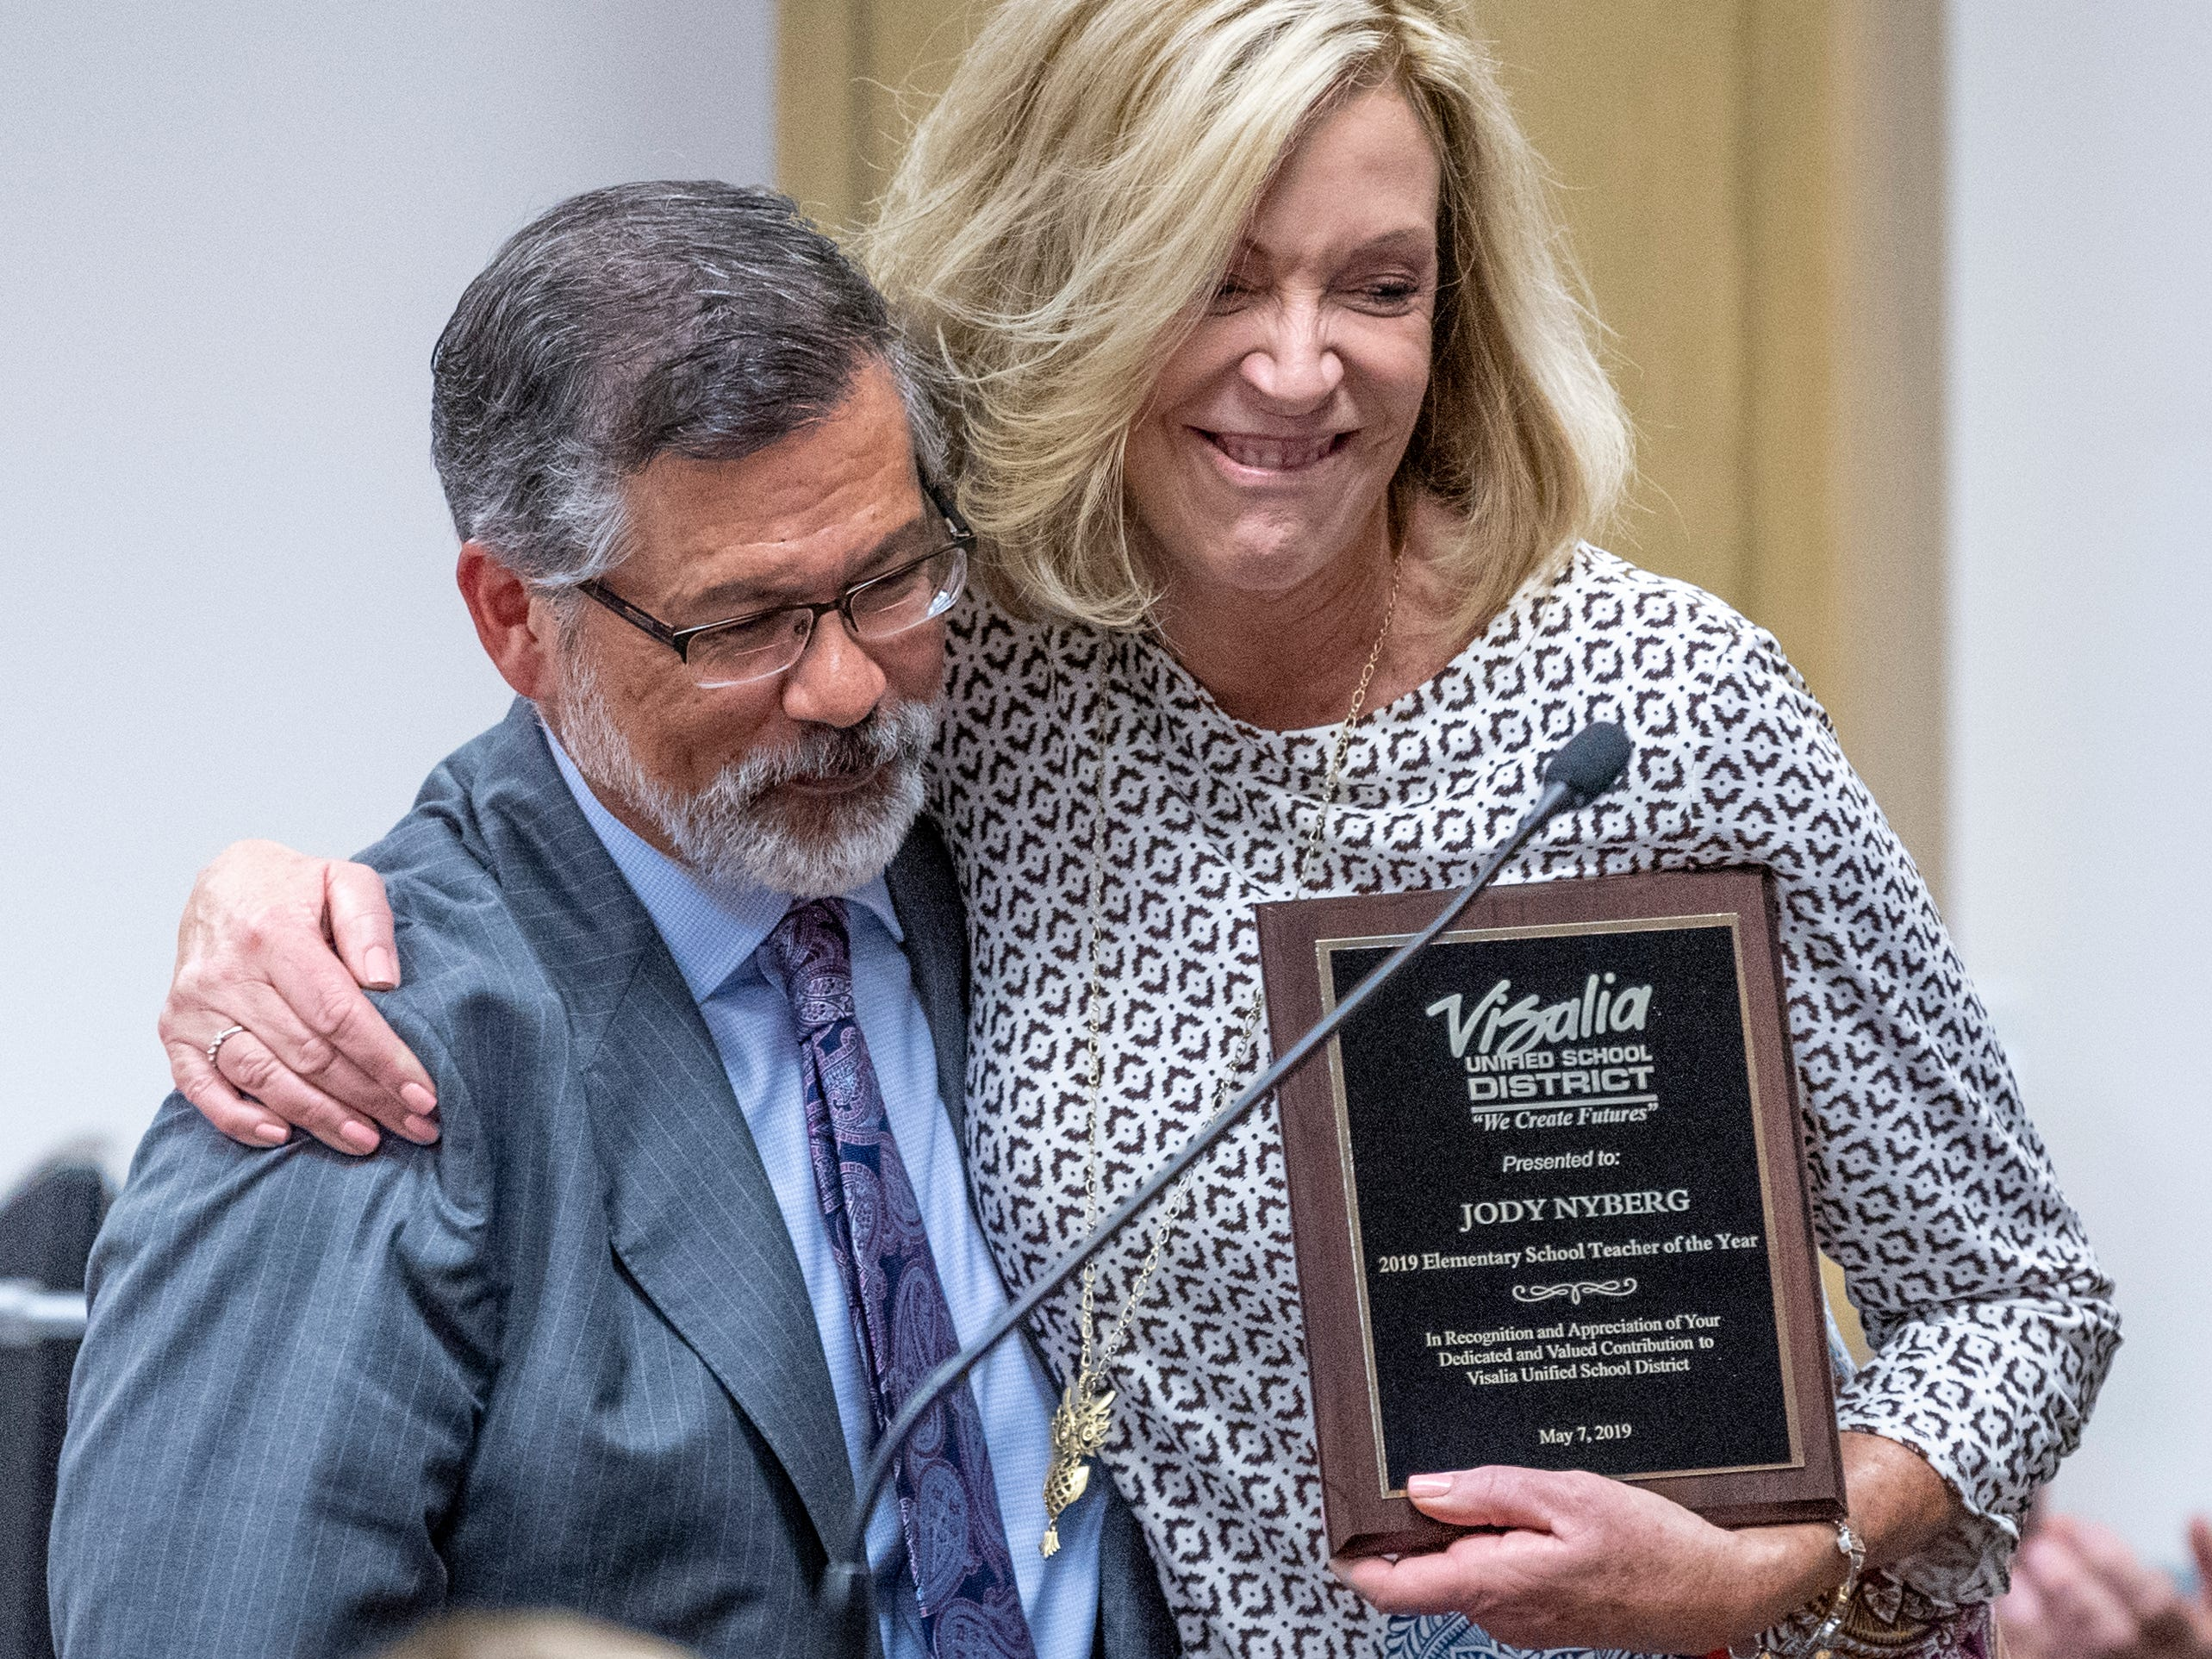 2019 Elementary School Teacher of the Year Jody Nyberg hugs Todd Oto after receiving her award on Tuesday, May 7, 2019.